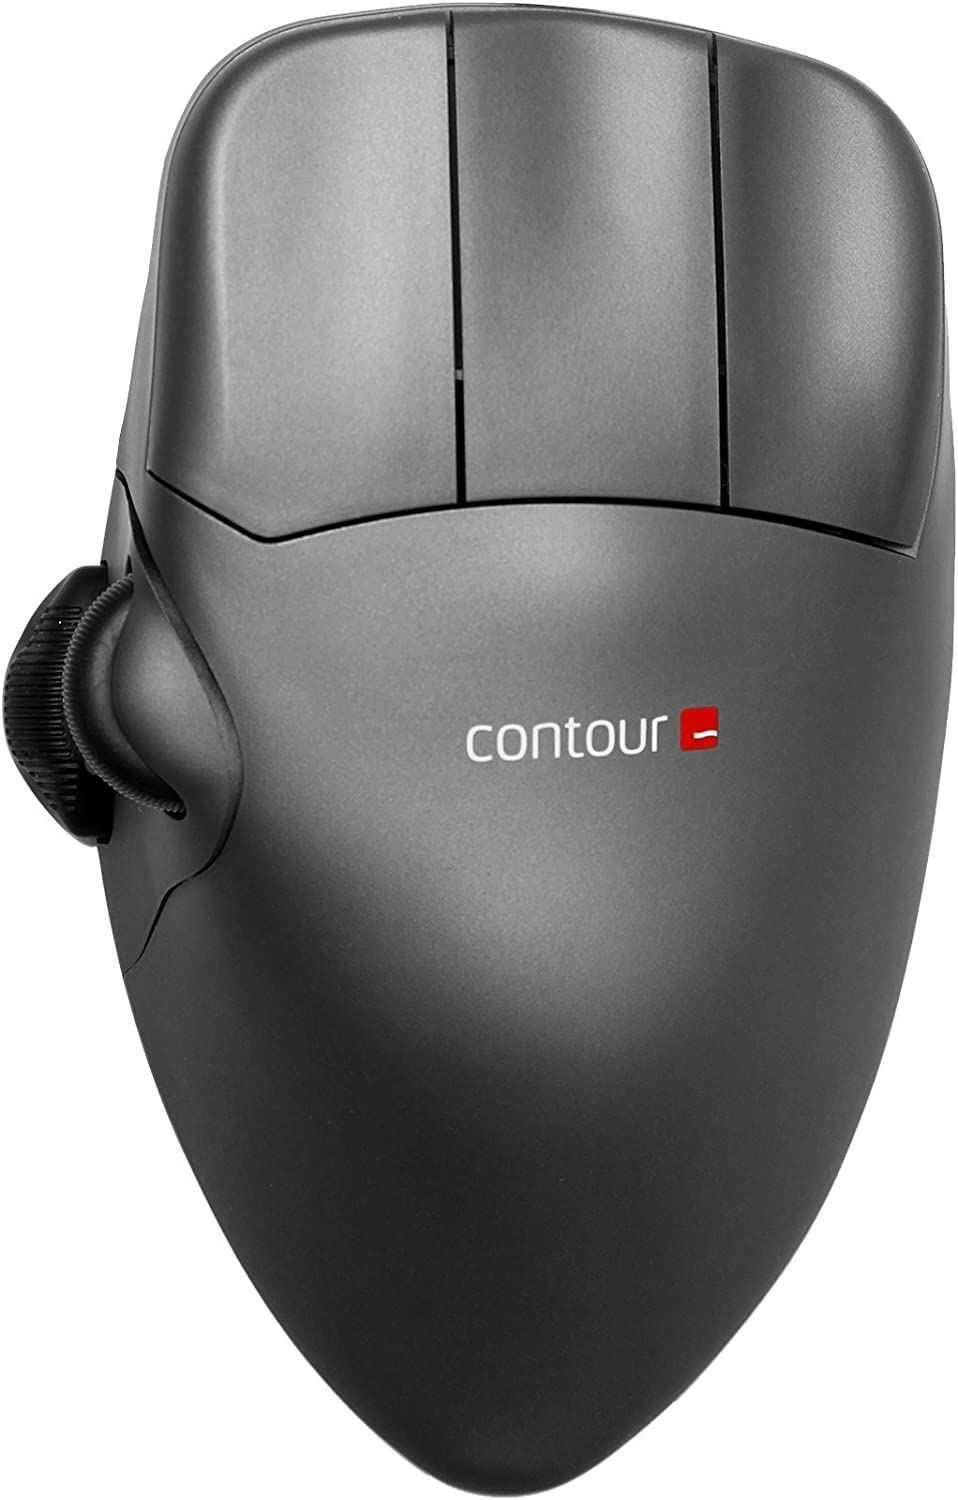 Contour Mouse Wireless Small, Right